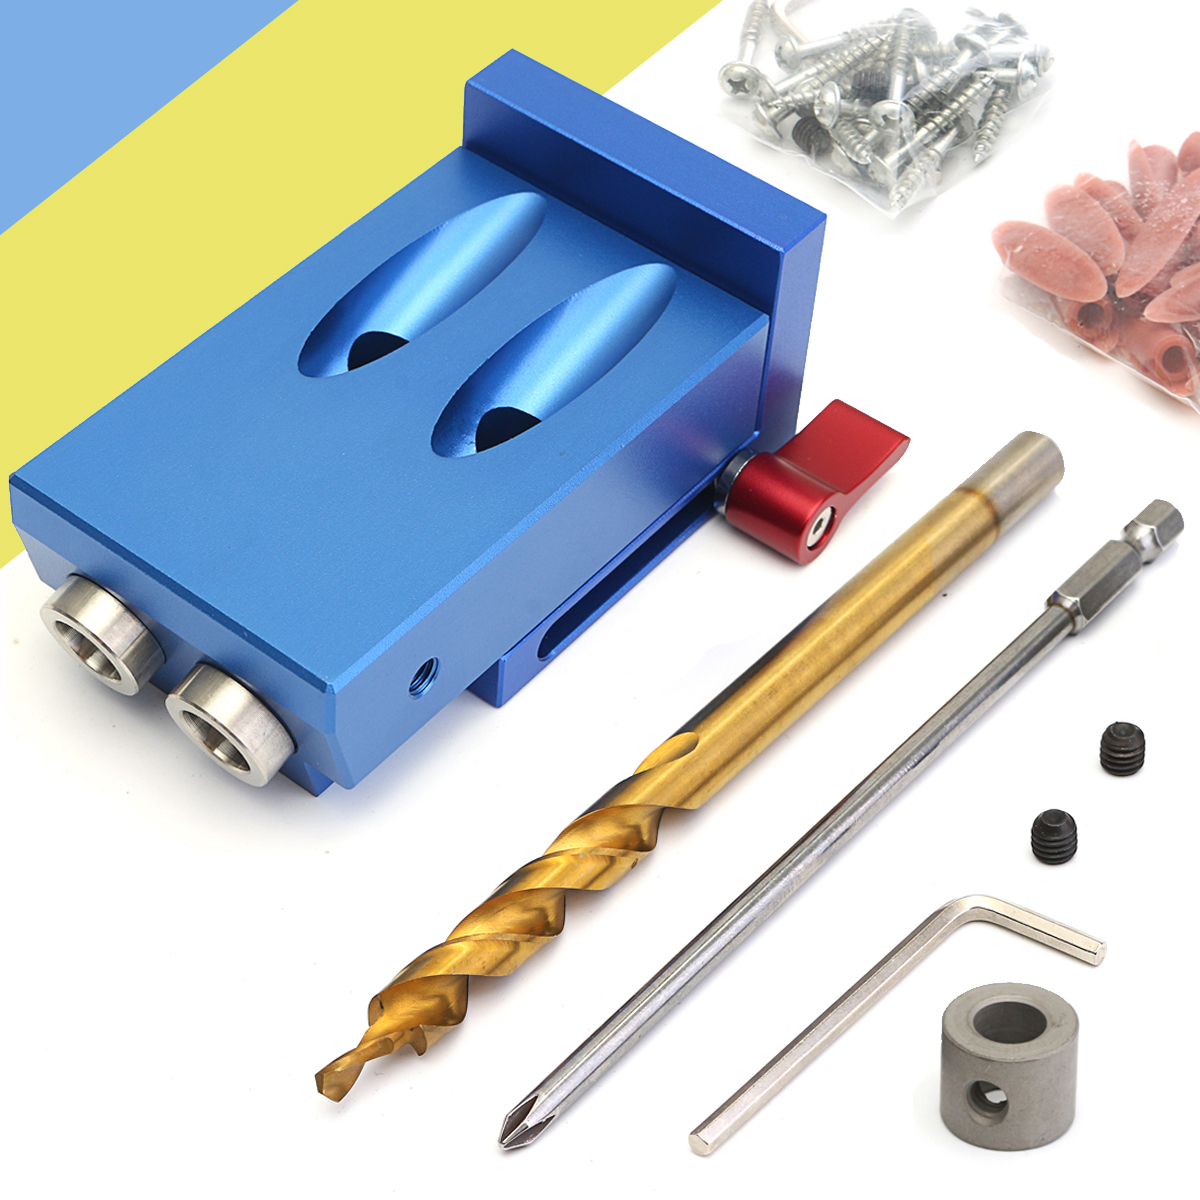 цена на Pocket Hole Jig Kit With Step Drill Bit Woodworking Cutter Tool 9.5mm Step Drill Bit Stop Collar Manual Wood Drilling Hole Saw